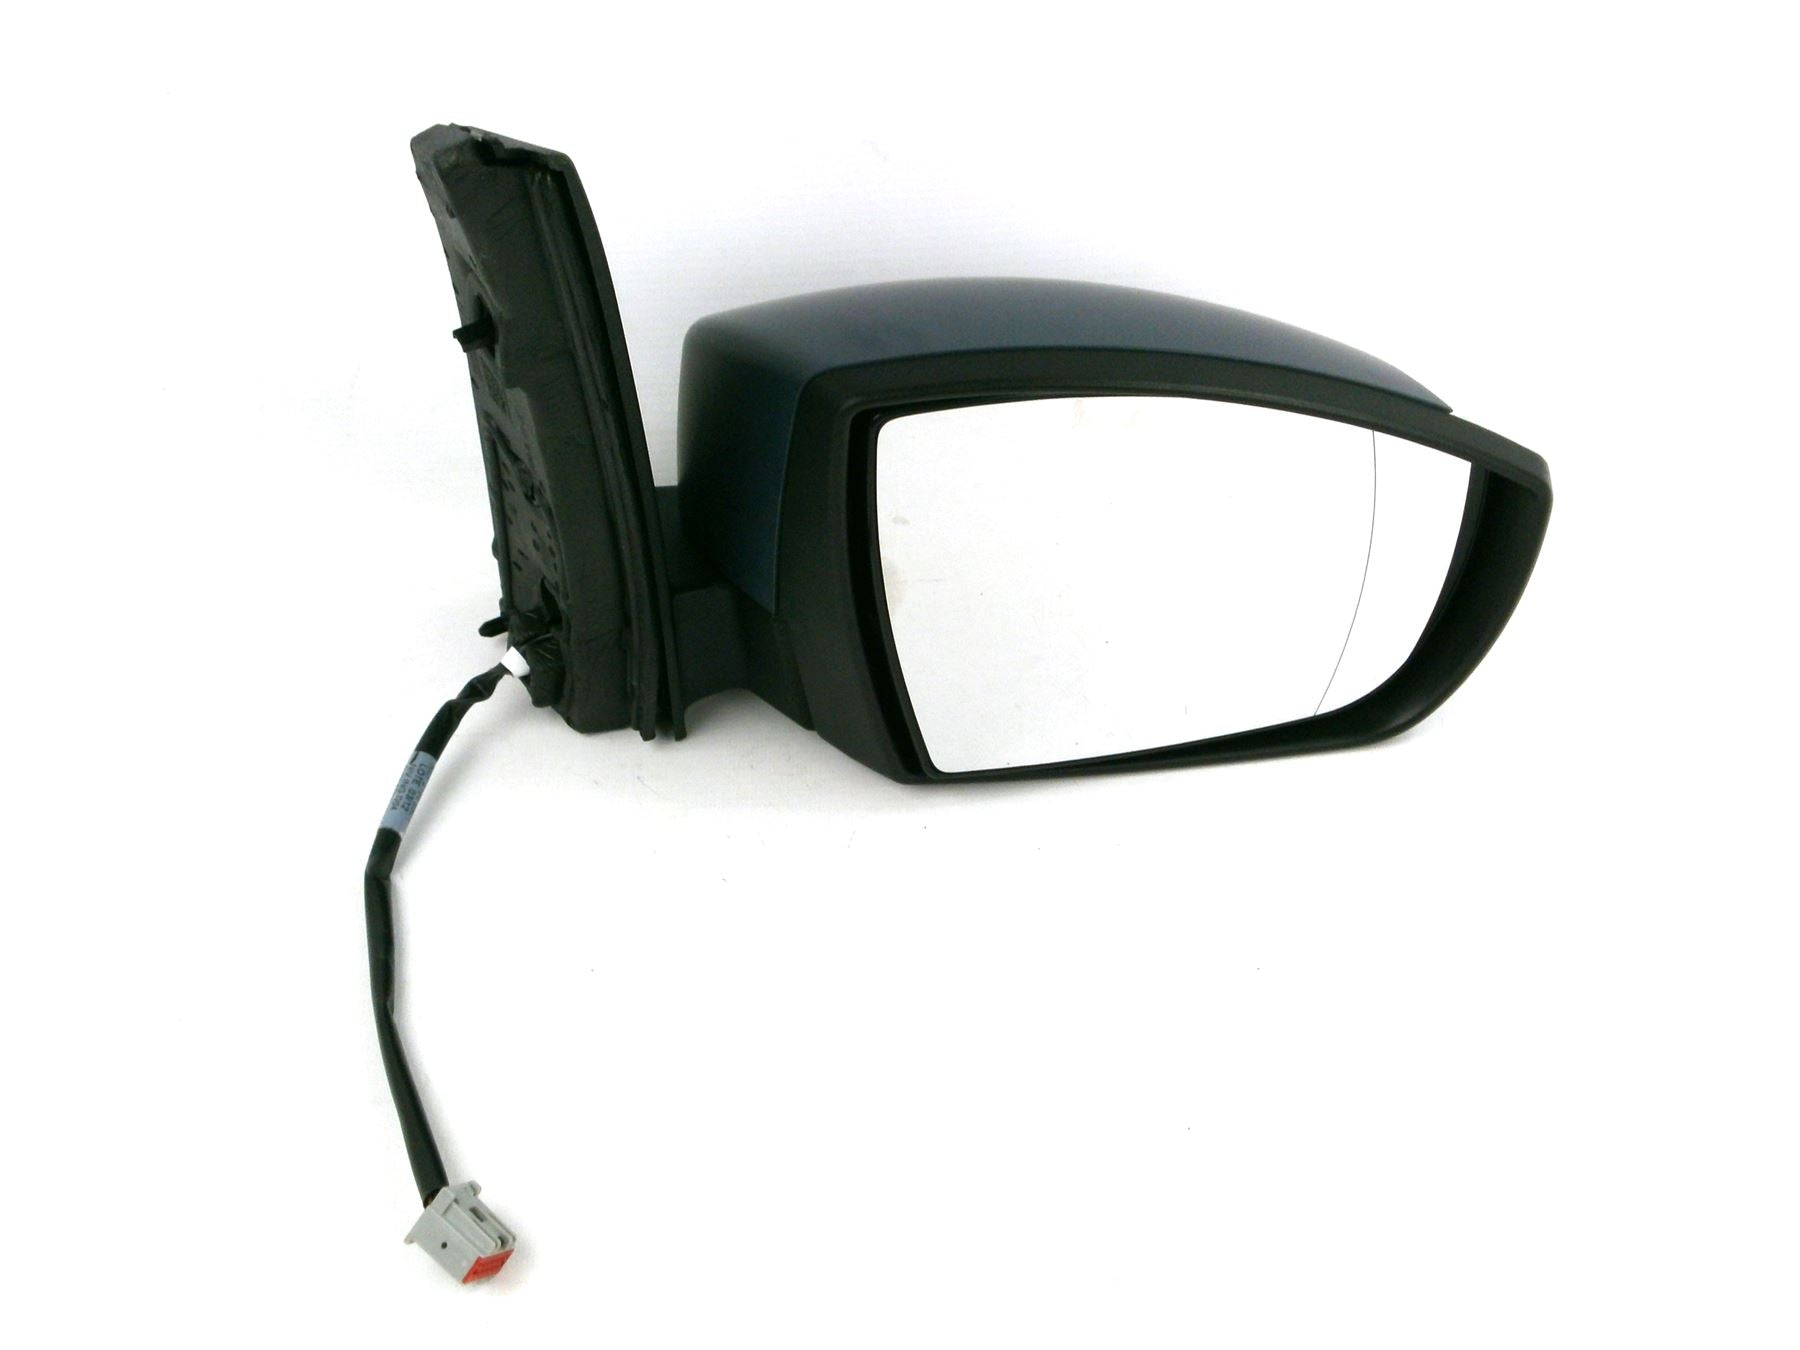 Ford C-Max 9/2010+ Electric Wing Mirror Non-Heated Indicator Primed Drivers Side